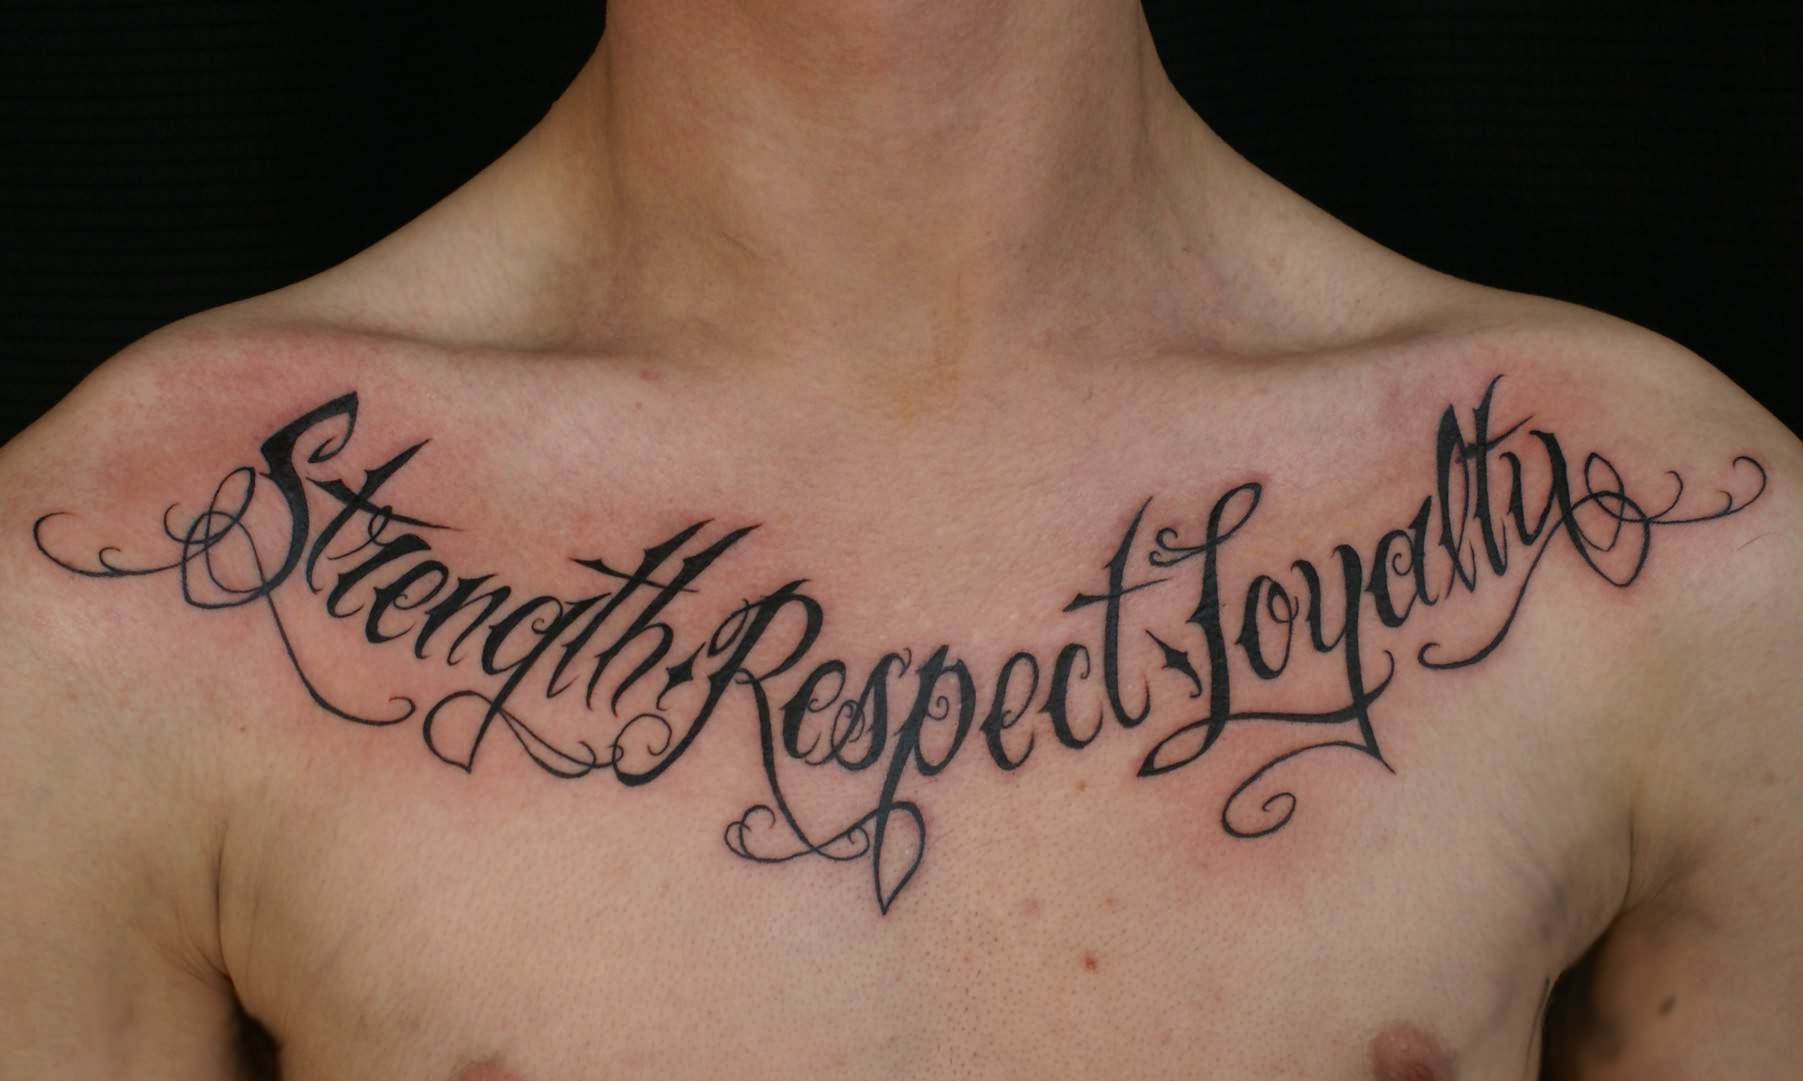 View More: Chest Tattoos